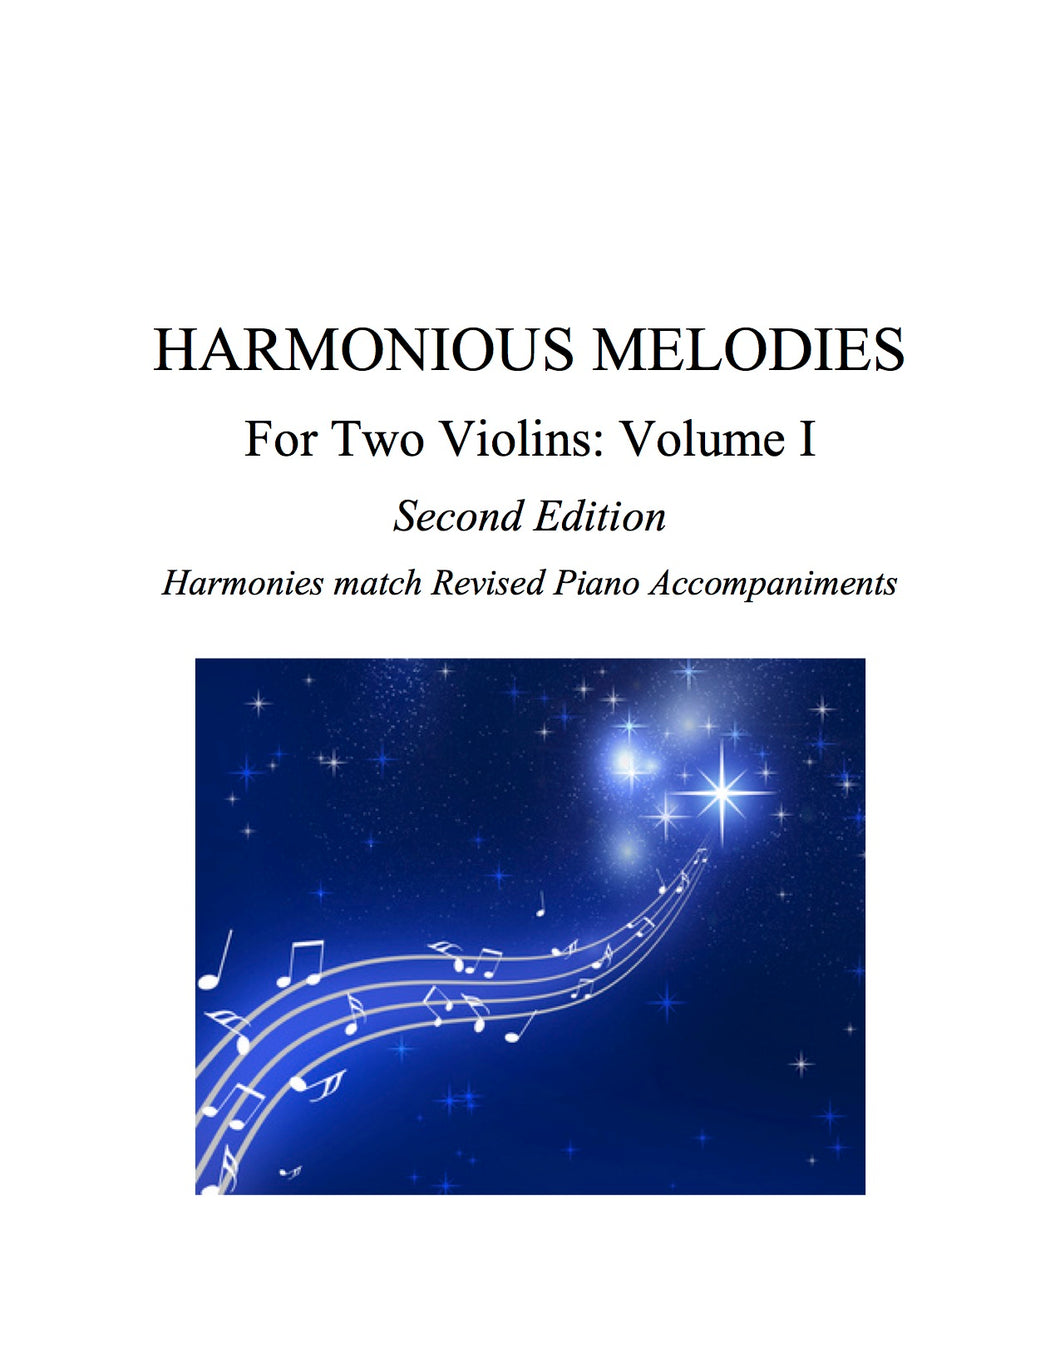 002 - Harmonious Melodies For Two Violins, Volume I (Suzuki 1B, 2 & 3)